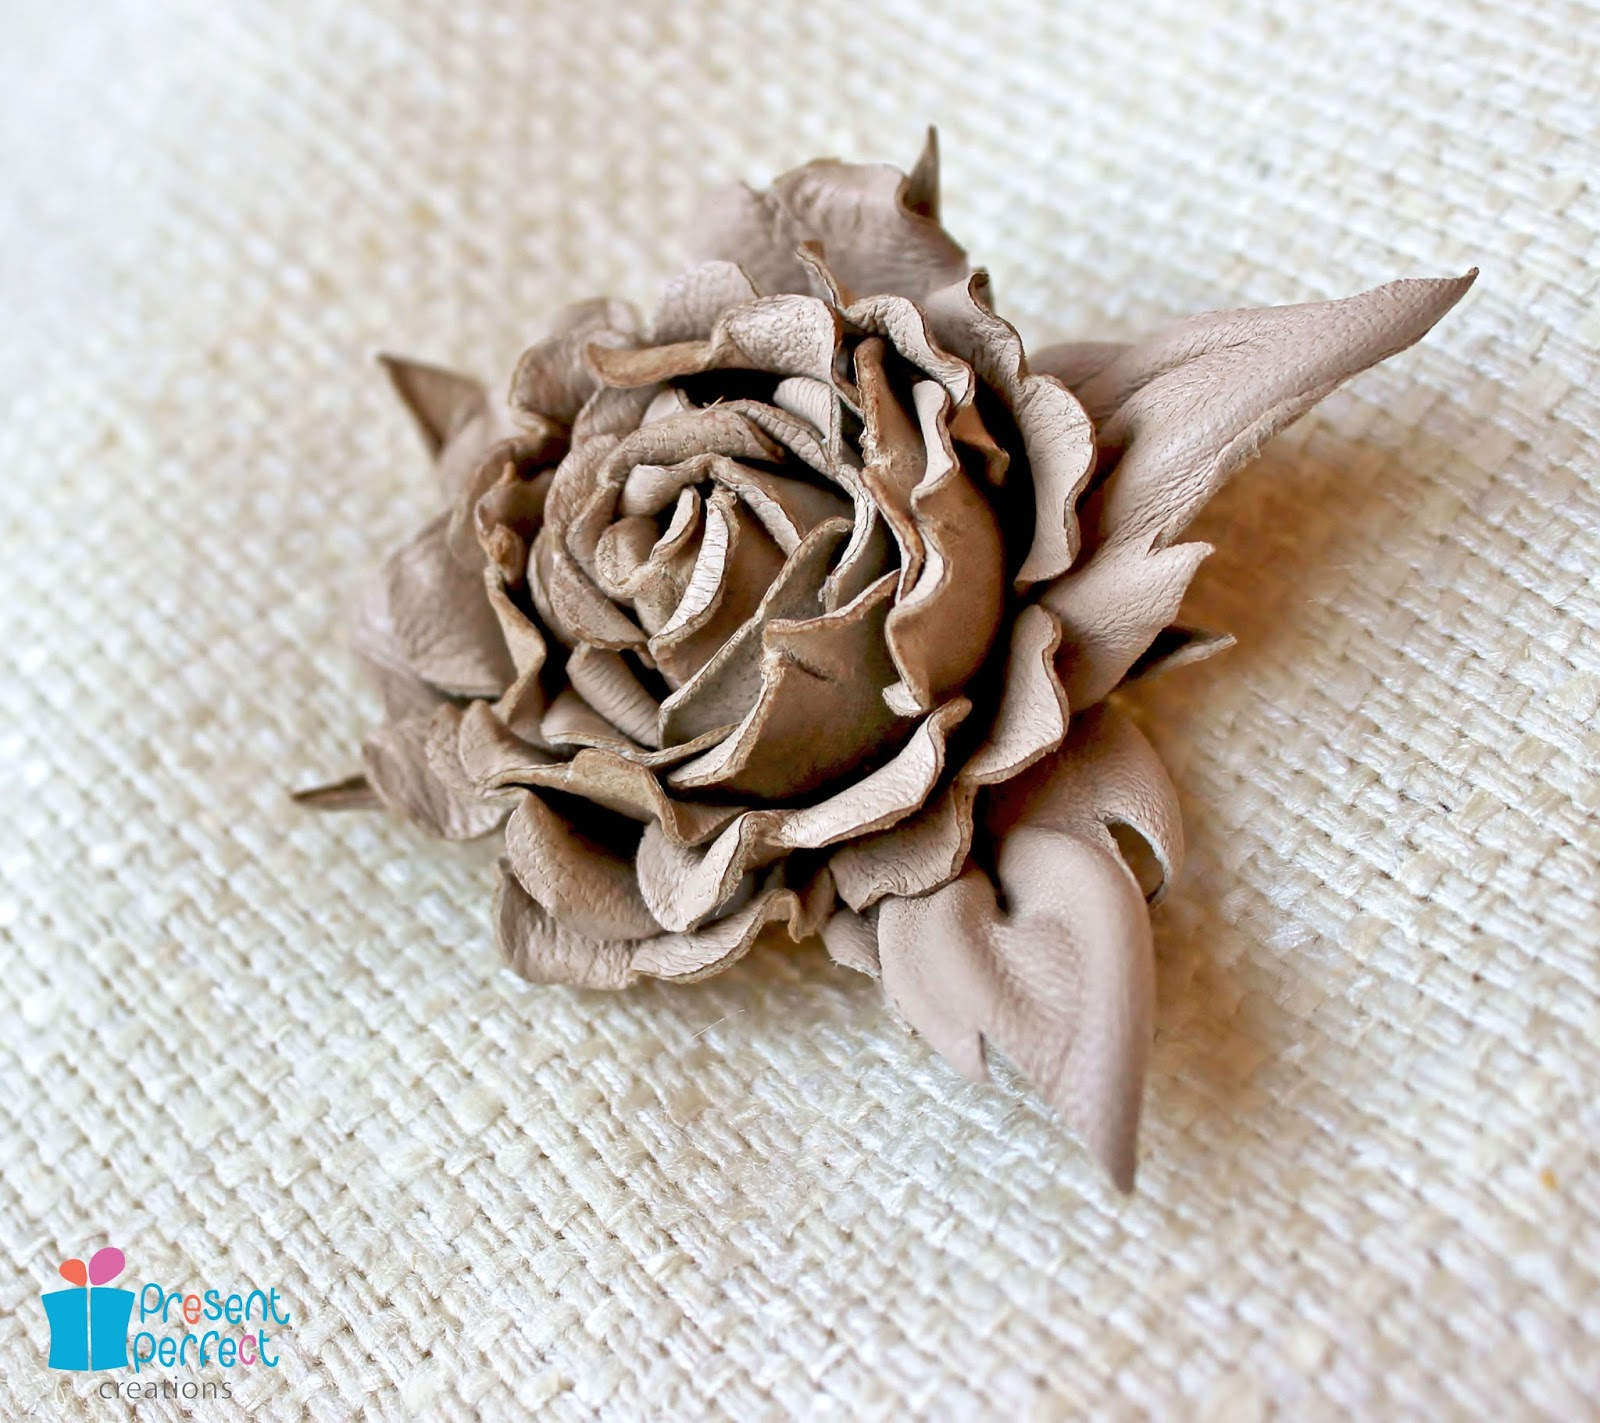 Present Perfect Creations: Leather rose